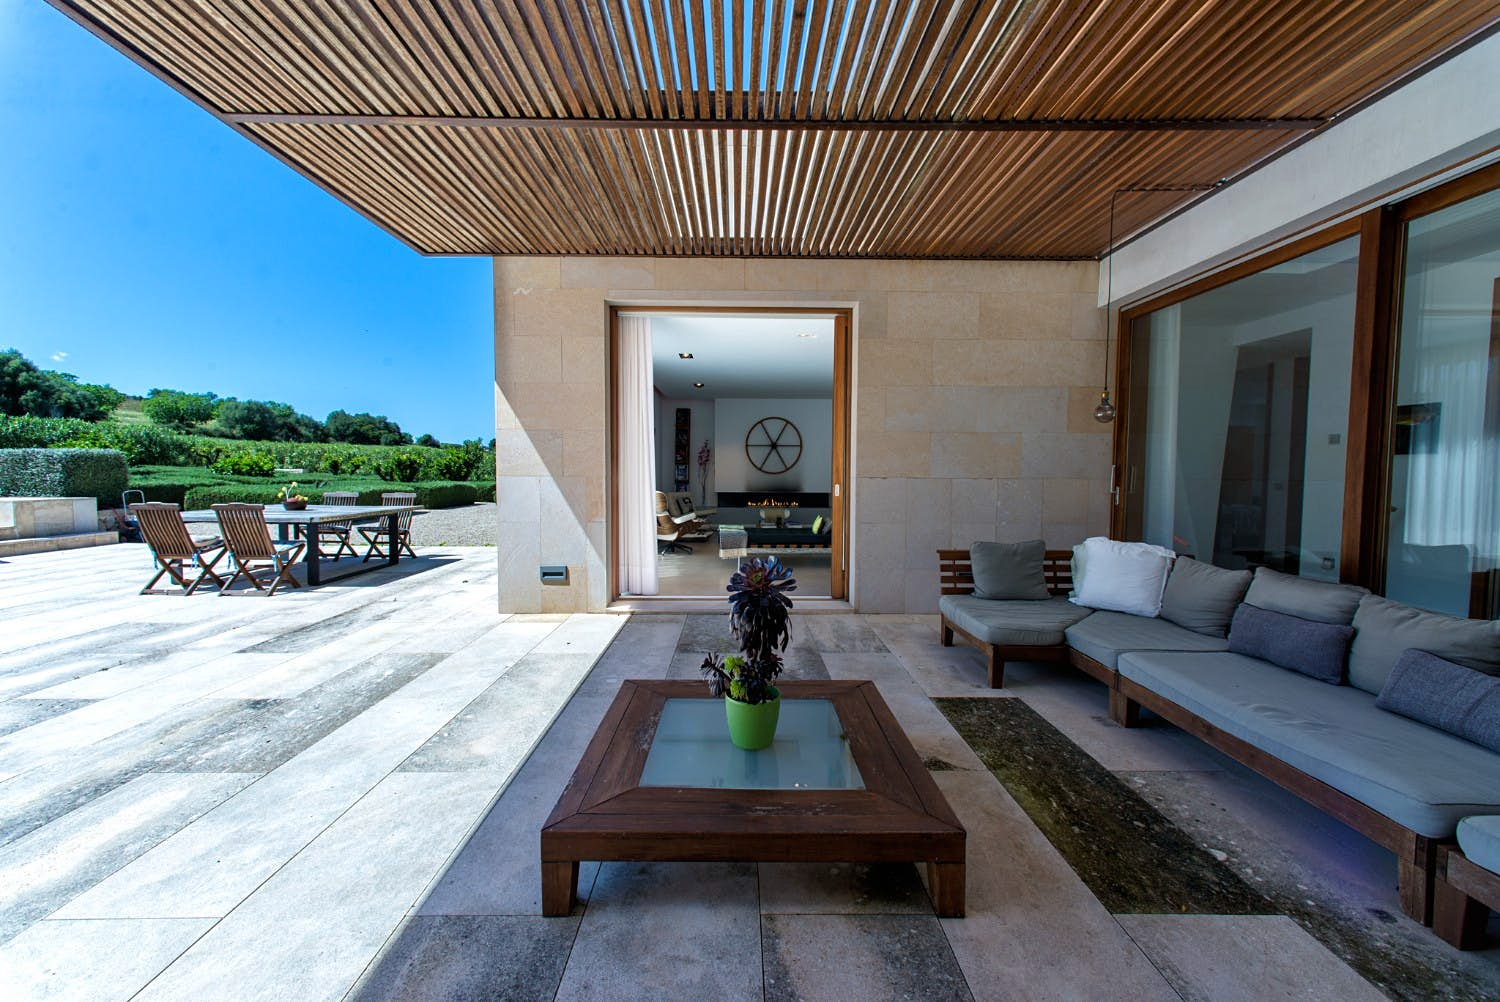 The seating area at Love Island's Casa Amor in Mallorca